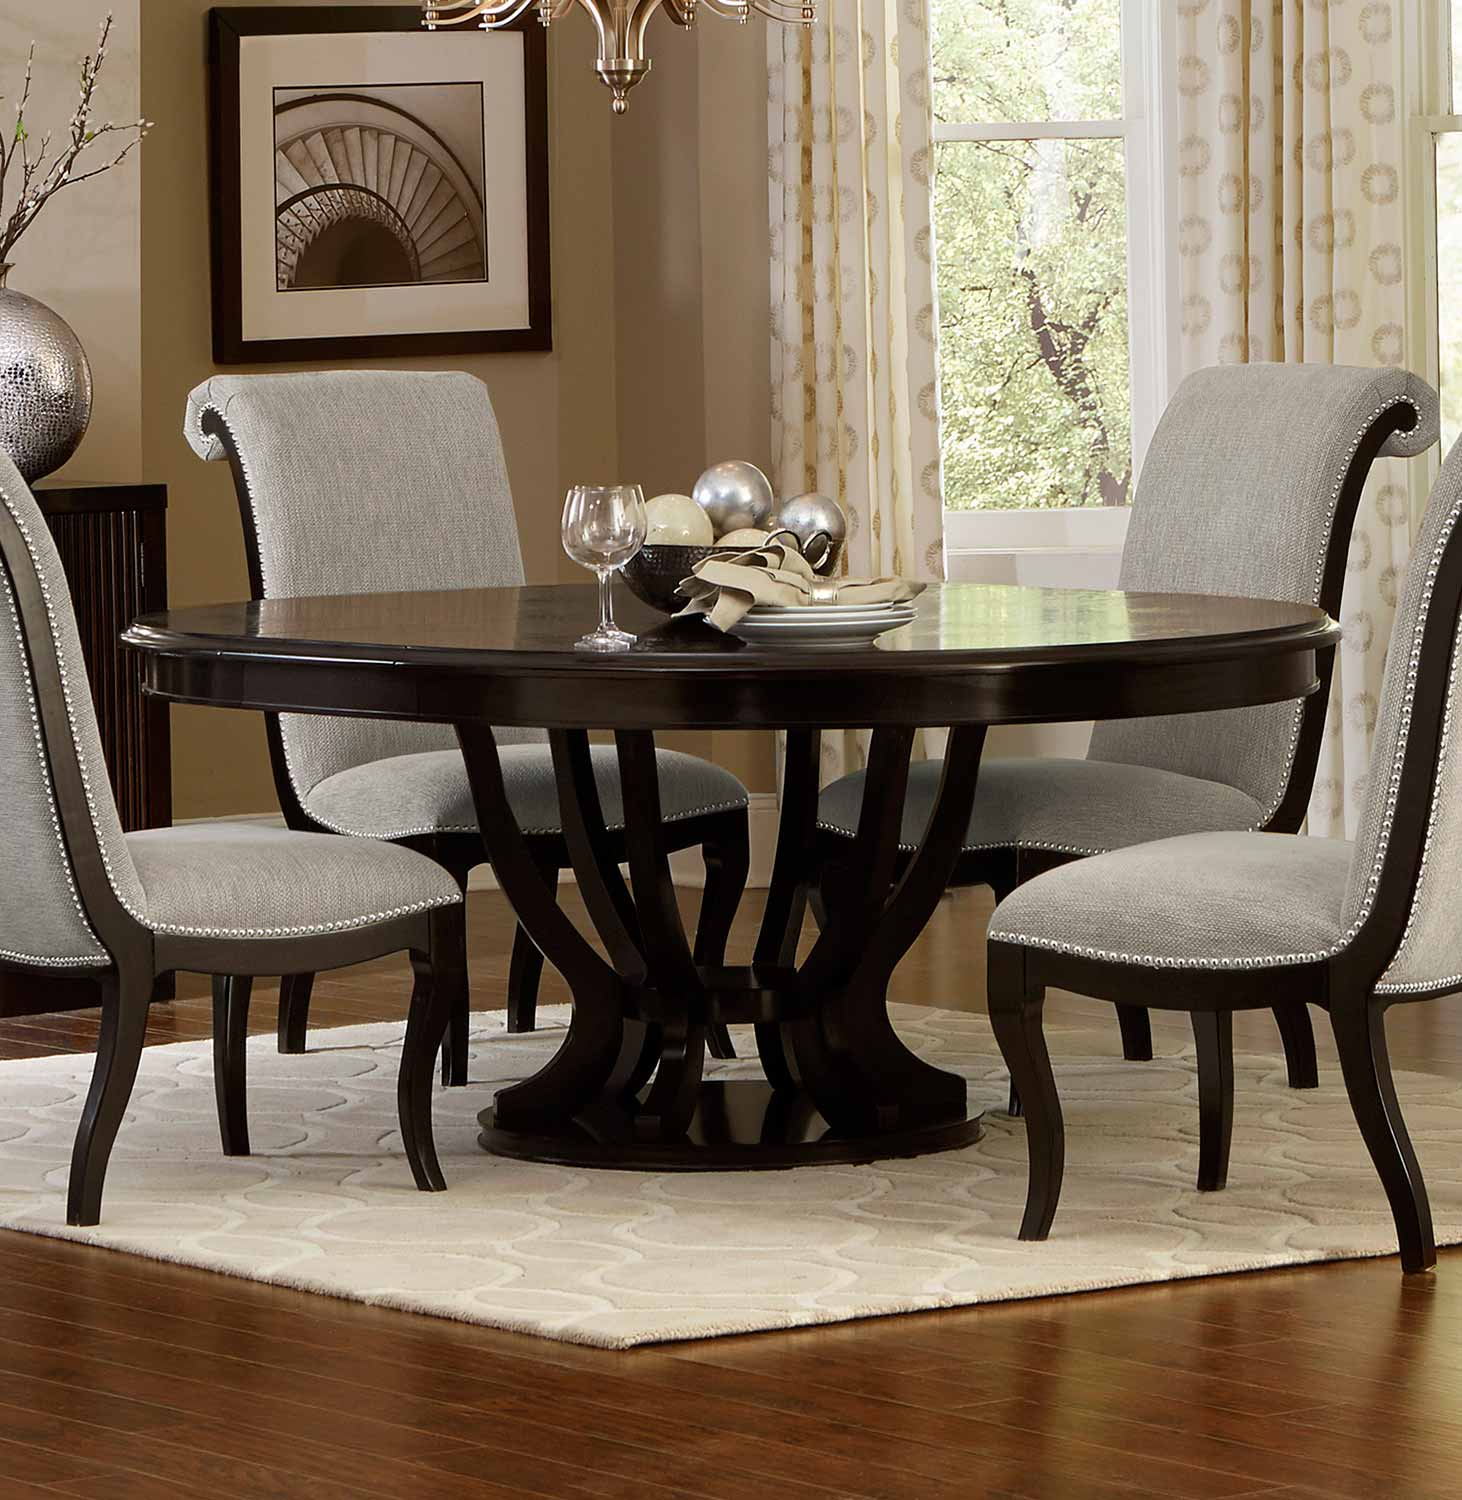 Homelegance Savion RoundOval Dining Table With Leaf Espresso - Oval dinner table